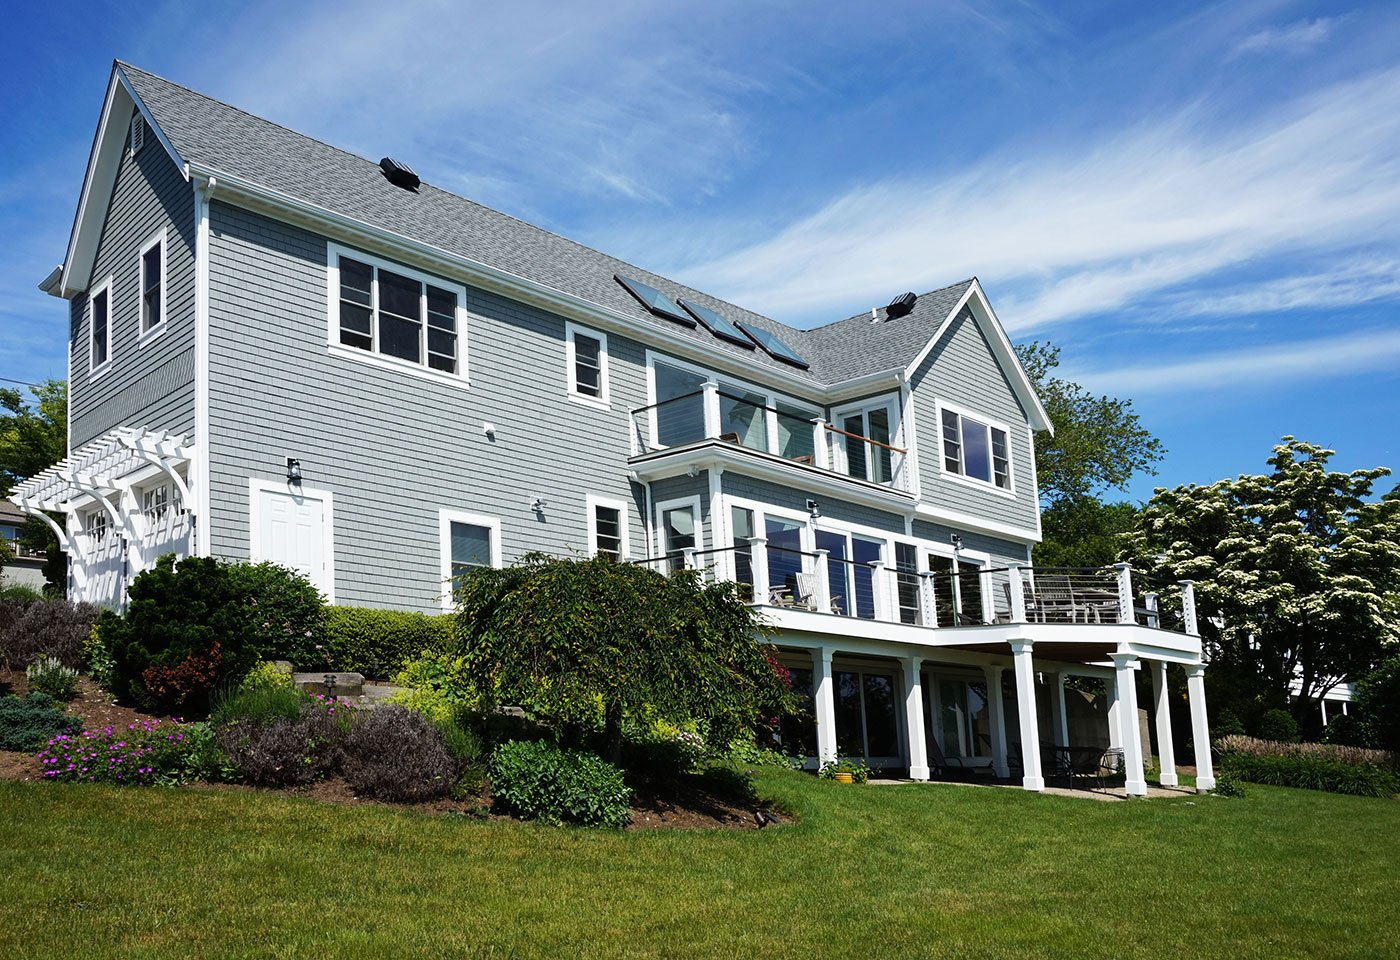 1 Exterior home renovation by in house design - construction build firm in RI